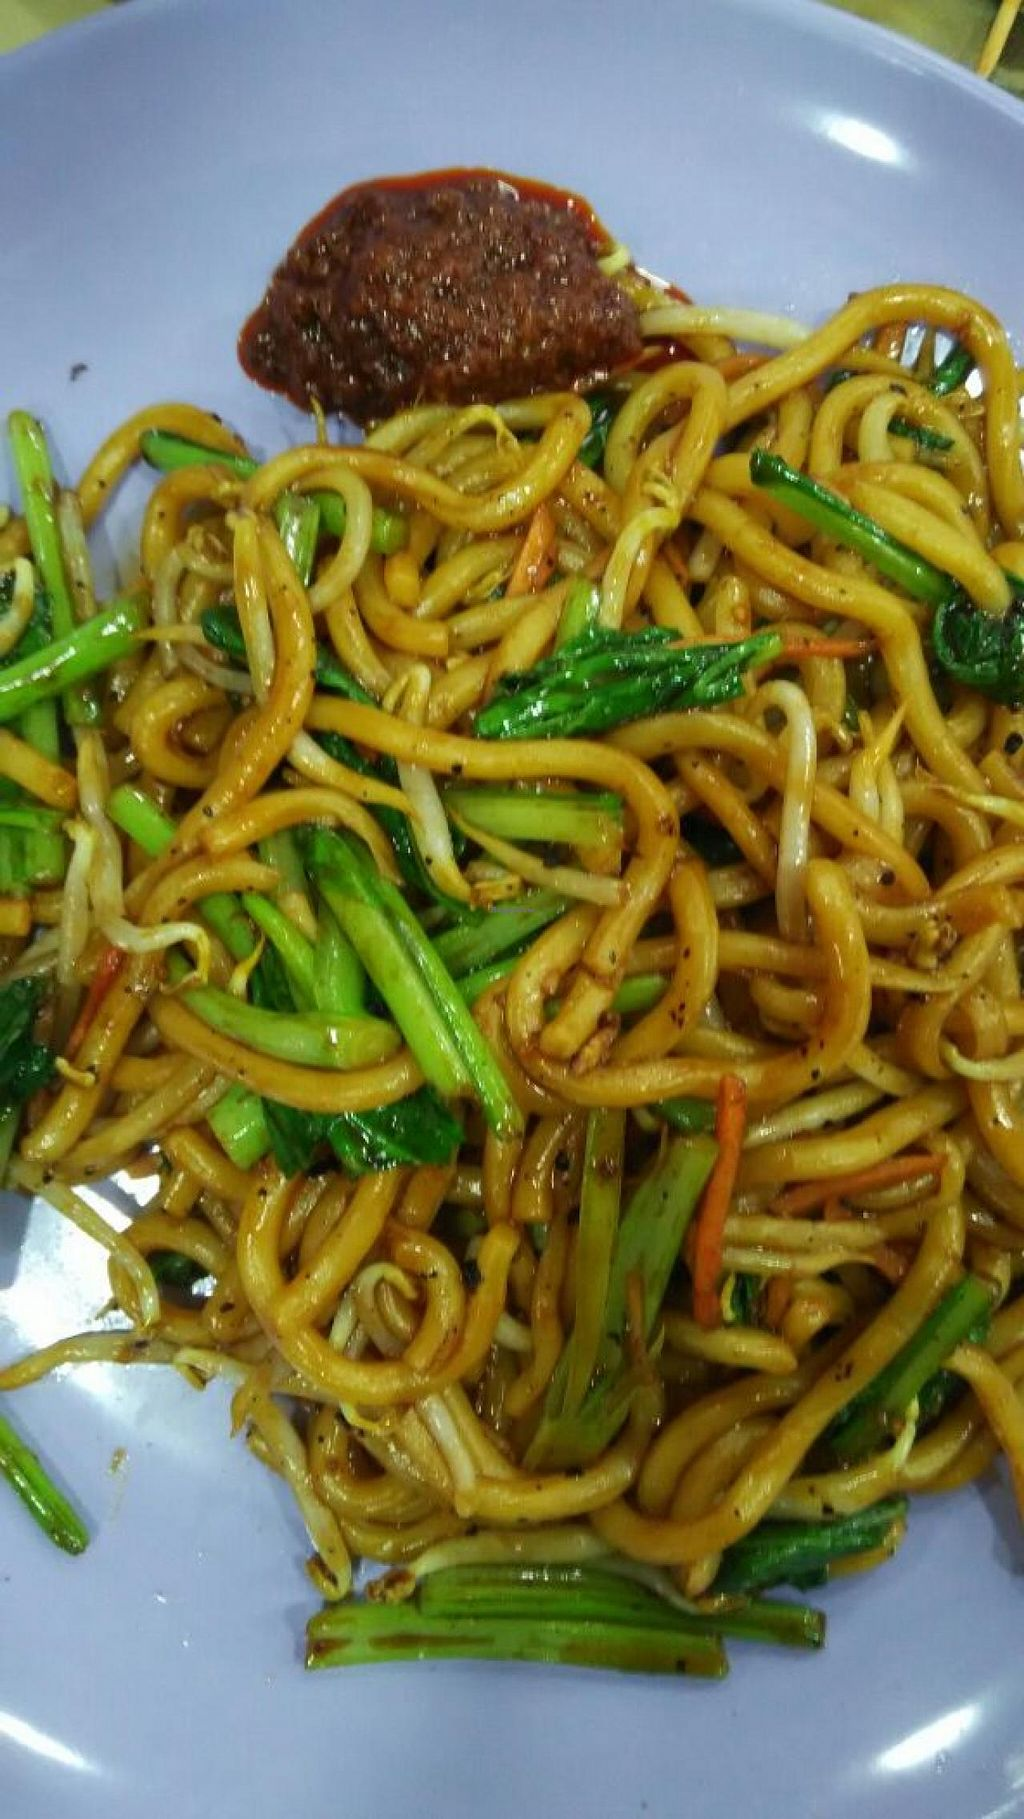 "Photo of San De Vegetarian - Vari Nice  by <a href=""/members/profile/JimmySeah"">JimmySeah</a> <br/>fried udon <br/> May 25, 2015  - <a href='/contact/abuse/image/58750/103374'>Report</a>"